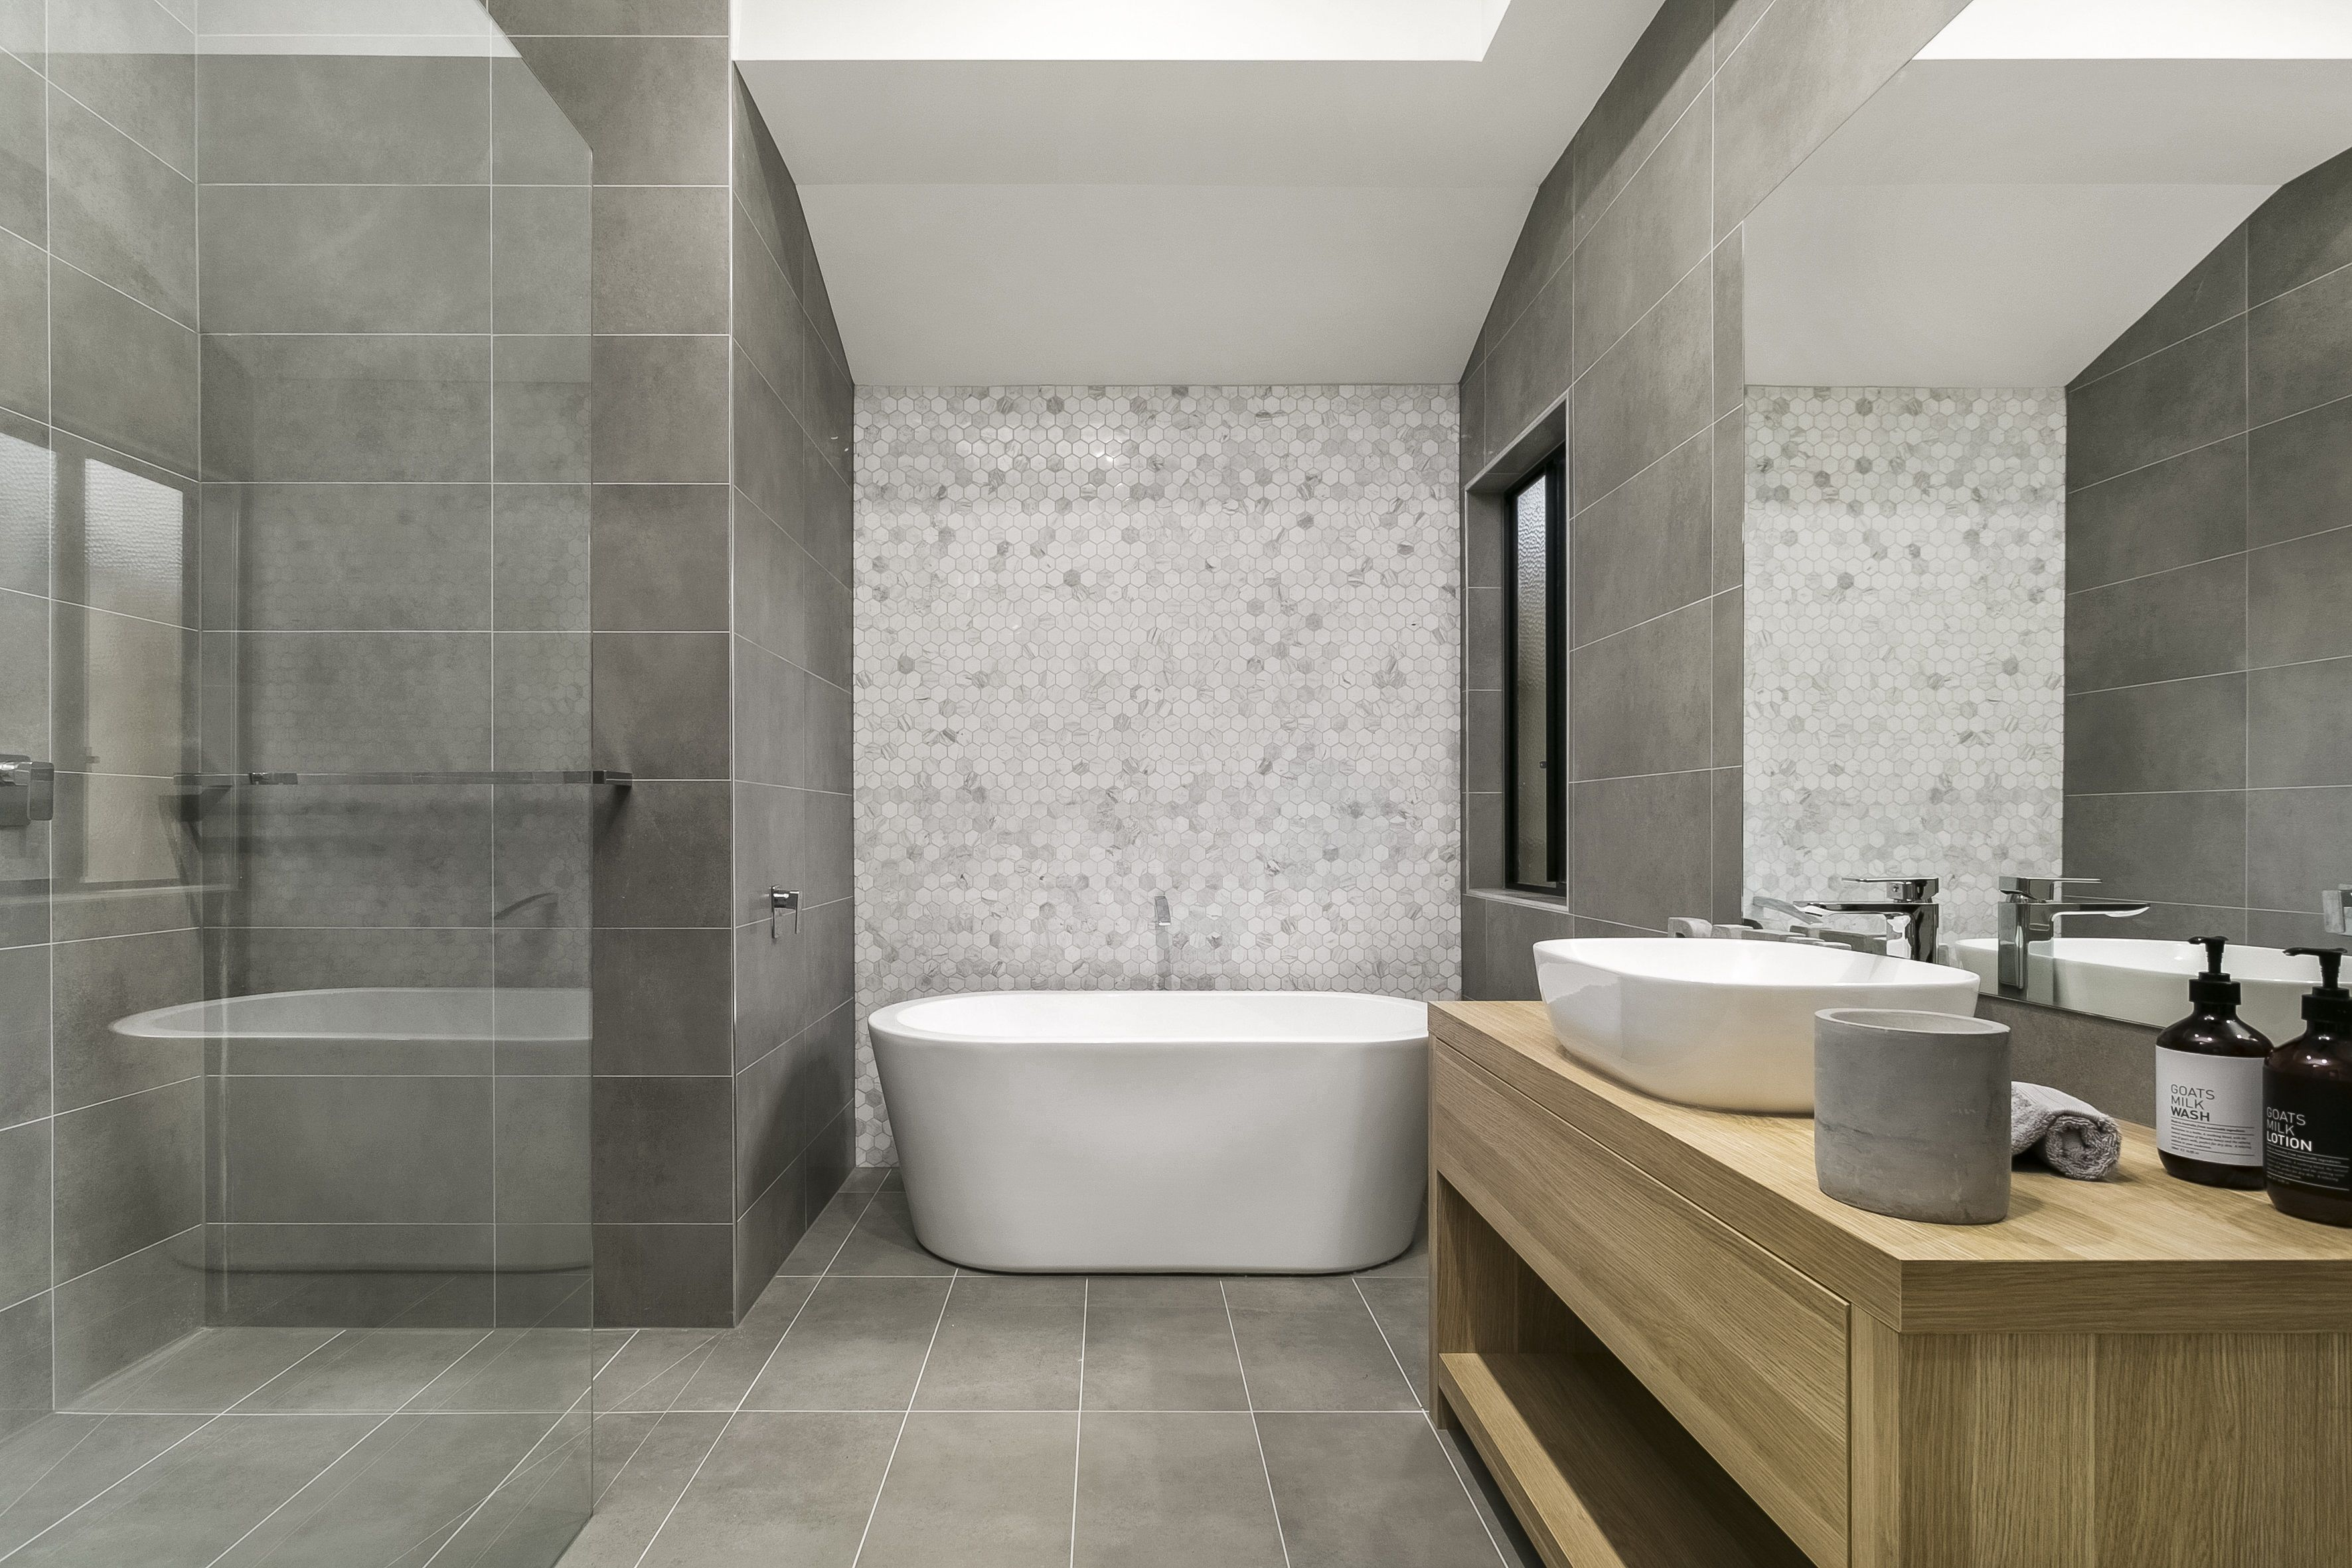 white herringbone subway surround tiles tile hexagon bathroom pin and flooring pattern with black